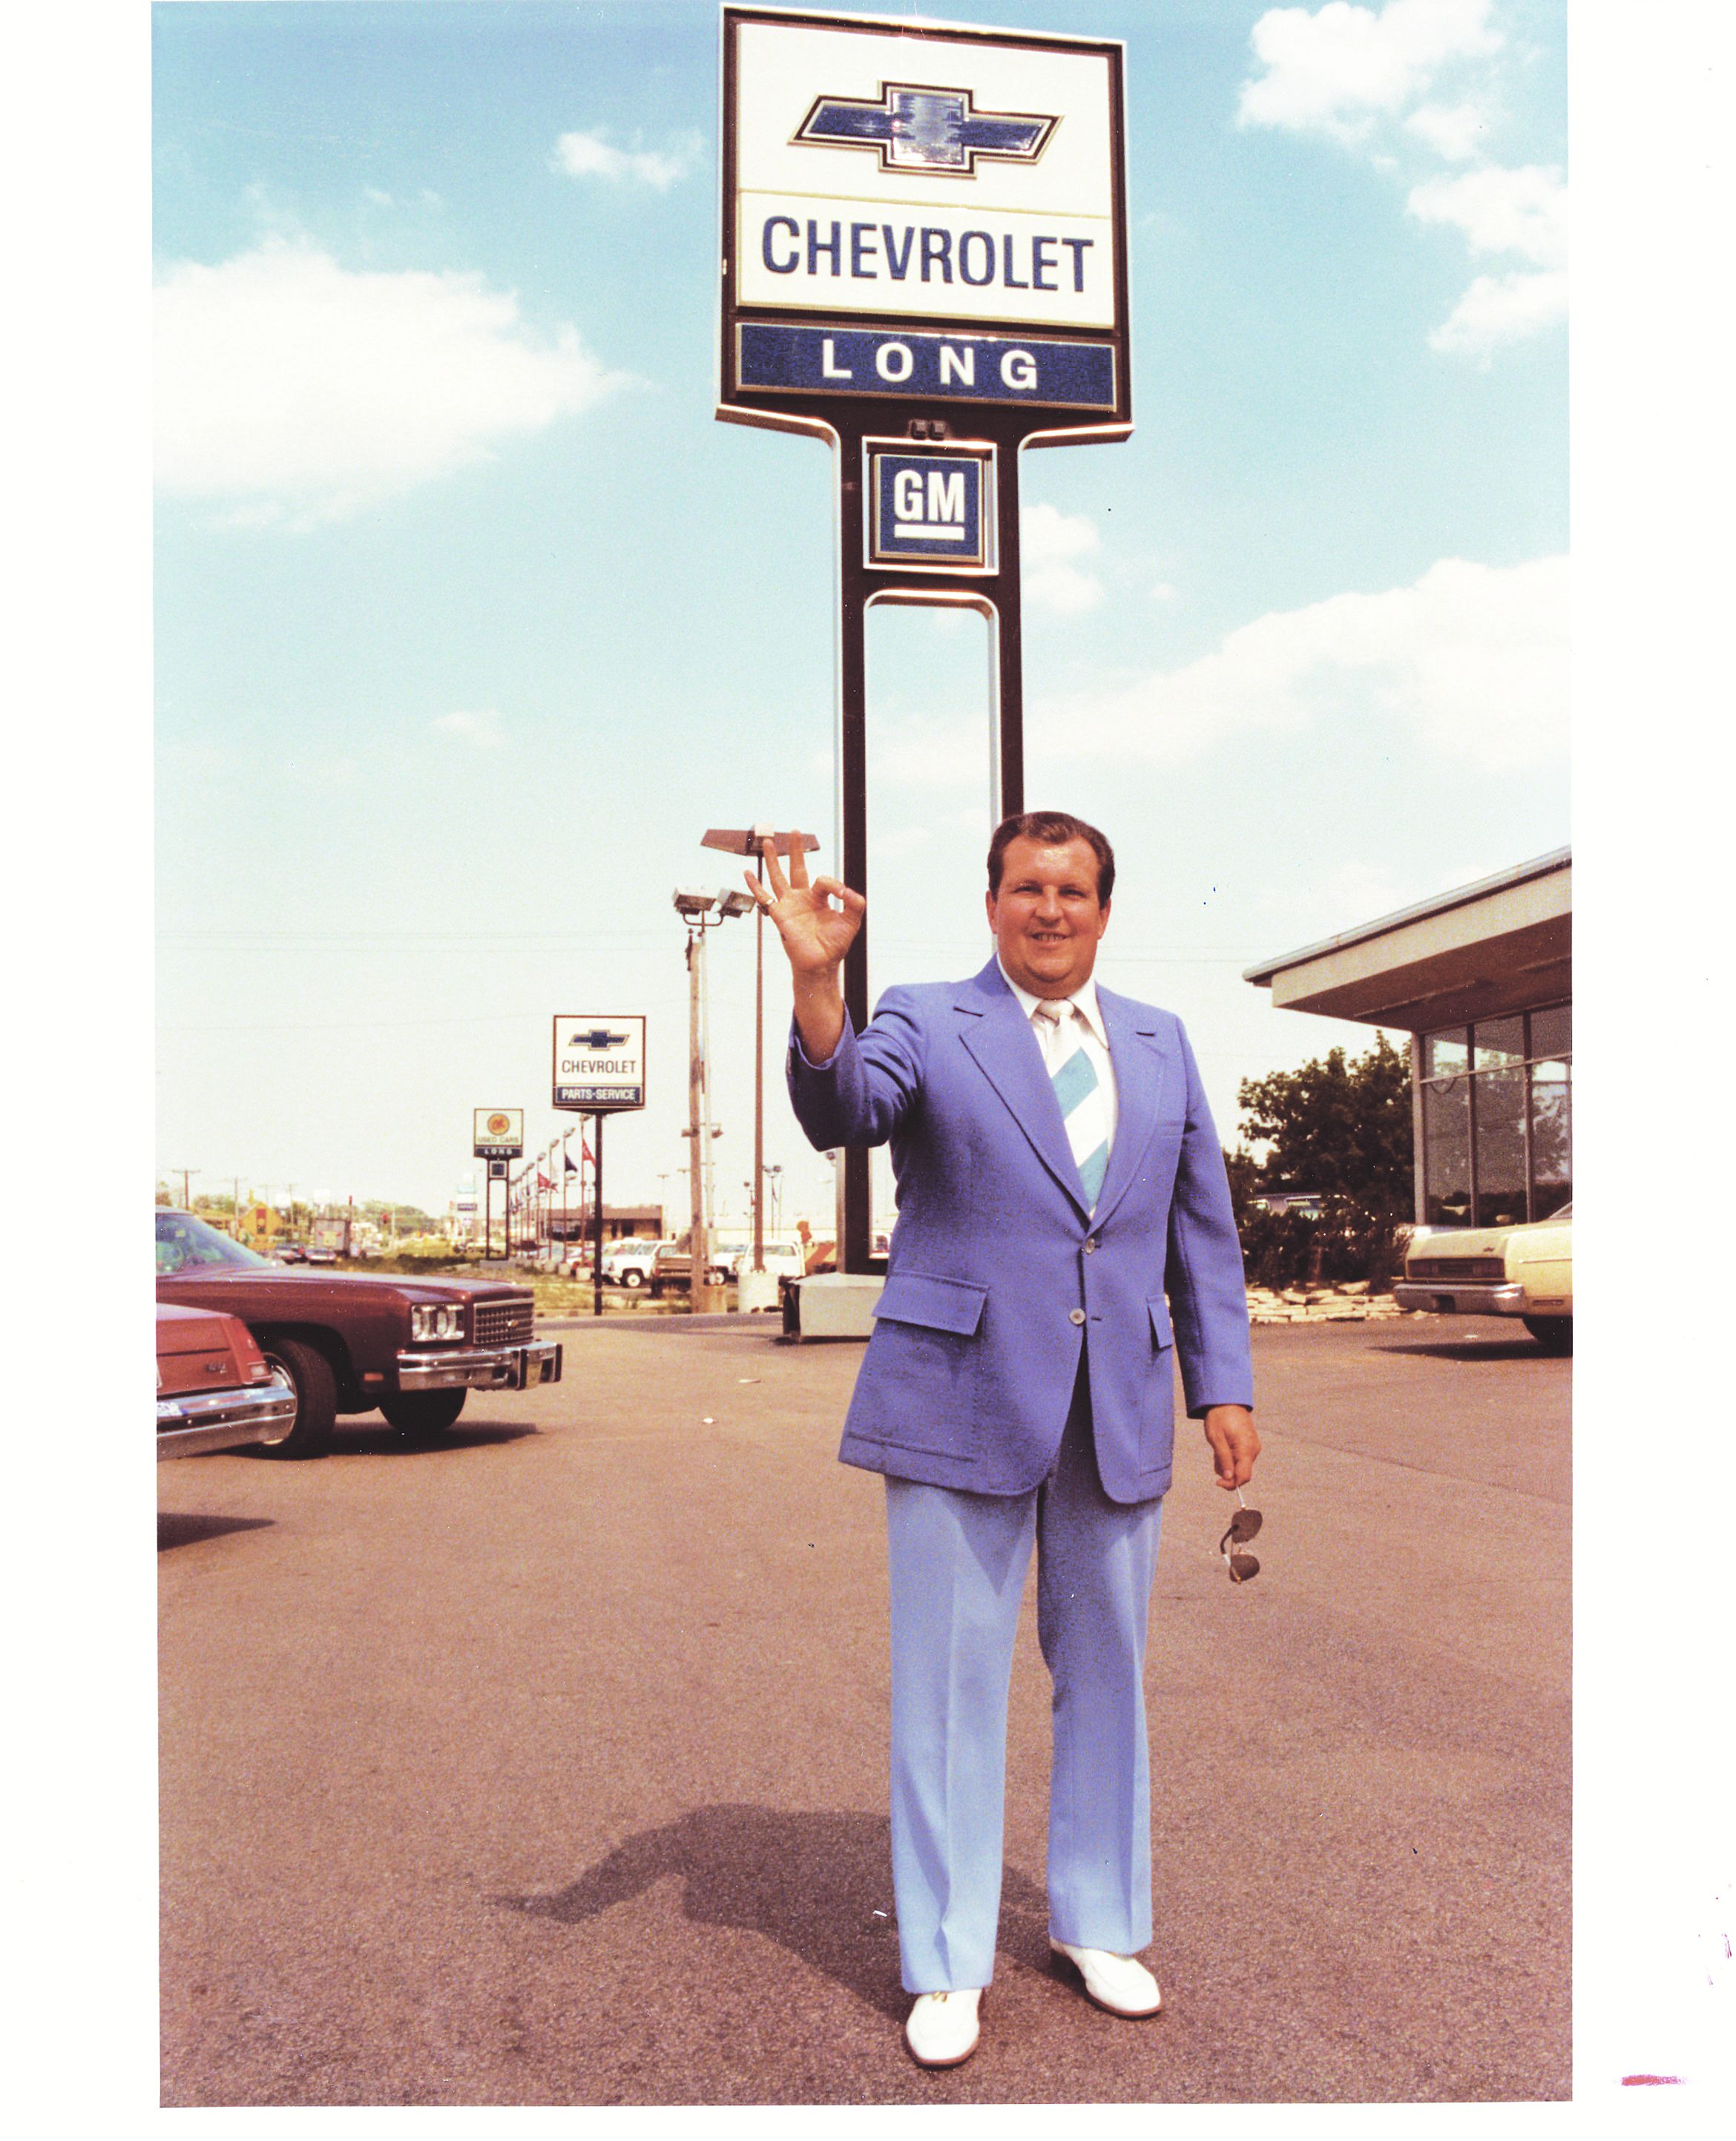 Long Chevrolet: A Founding Fleet Dealer